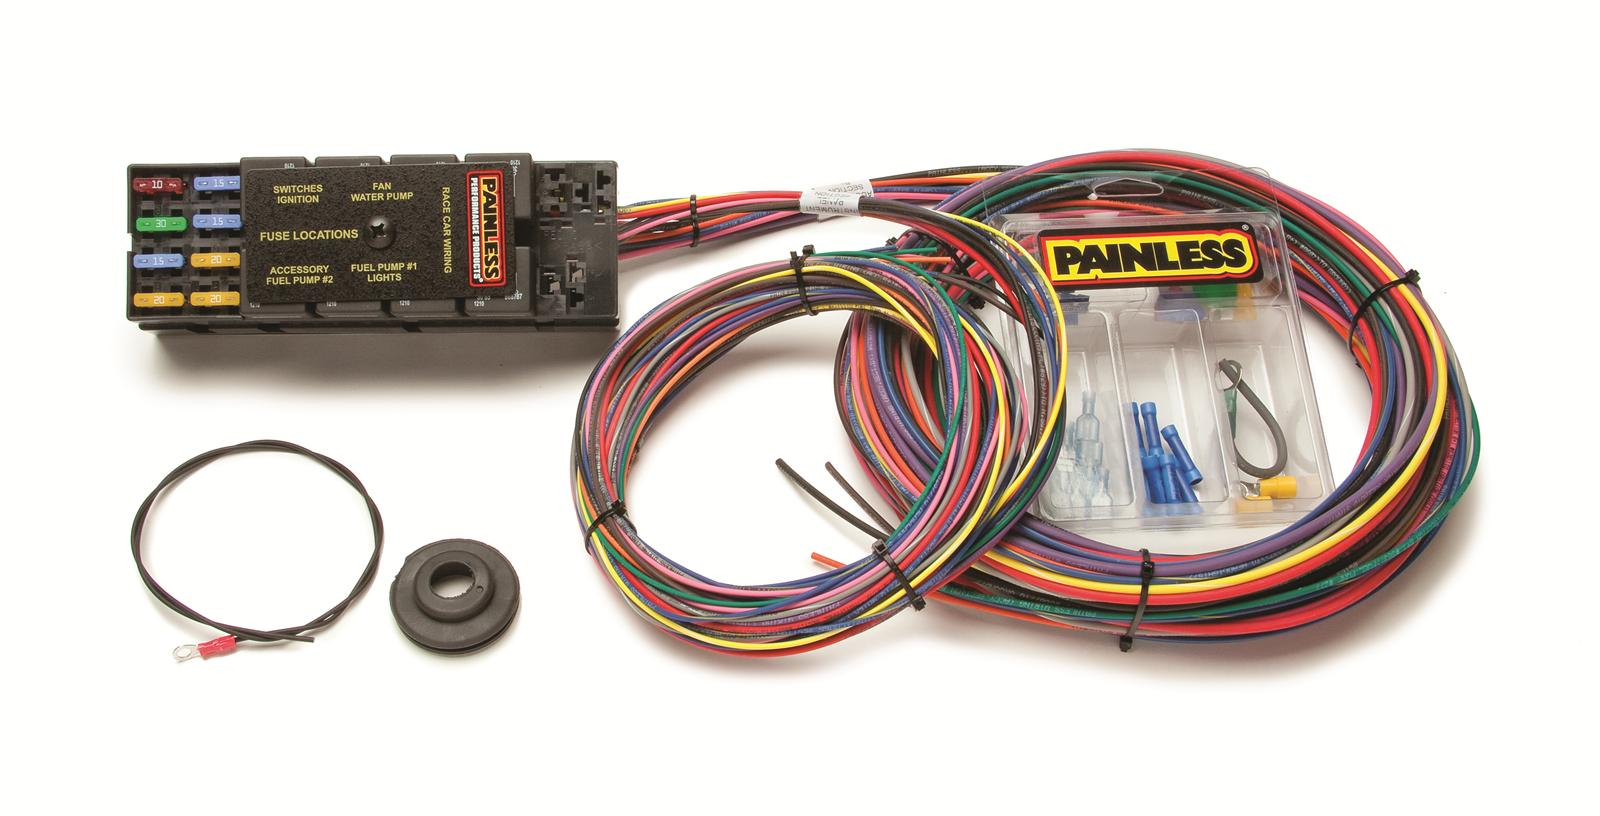 Painless Wiring 50001 Fuse Box Guide And Troubleshooting Of 70207 Block Harness 8 Circuit Dash Ignition Spade Ebay Diagram